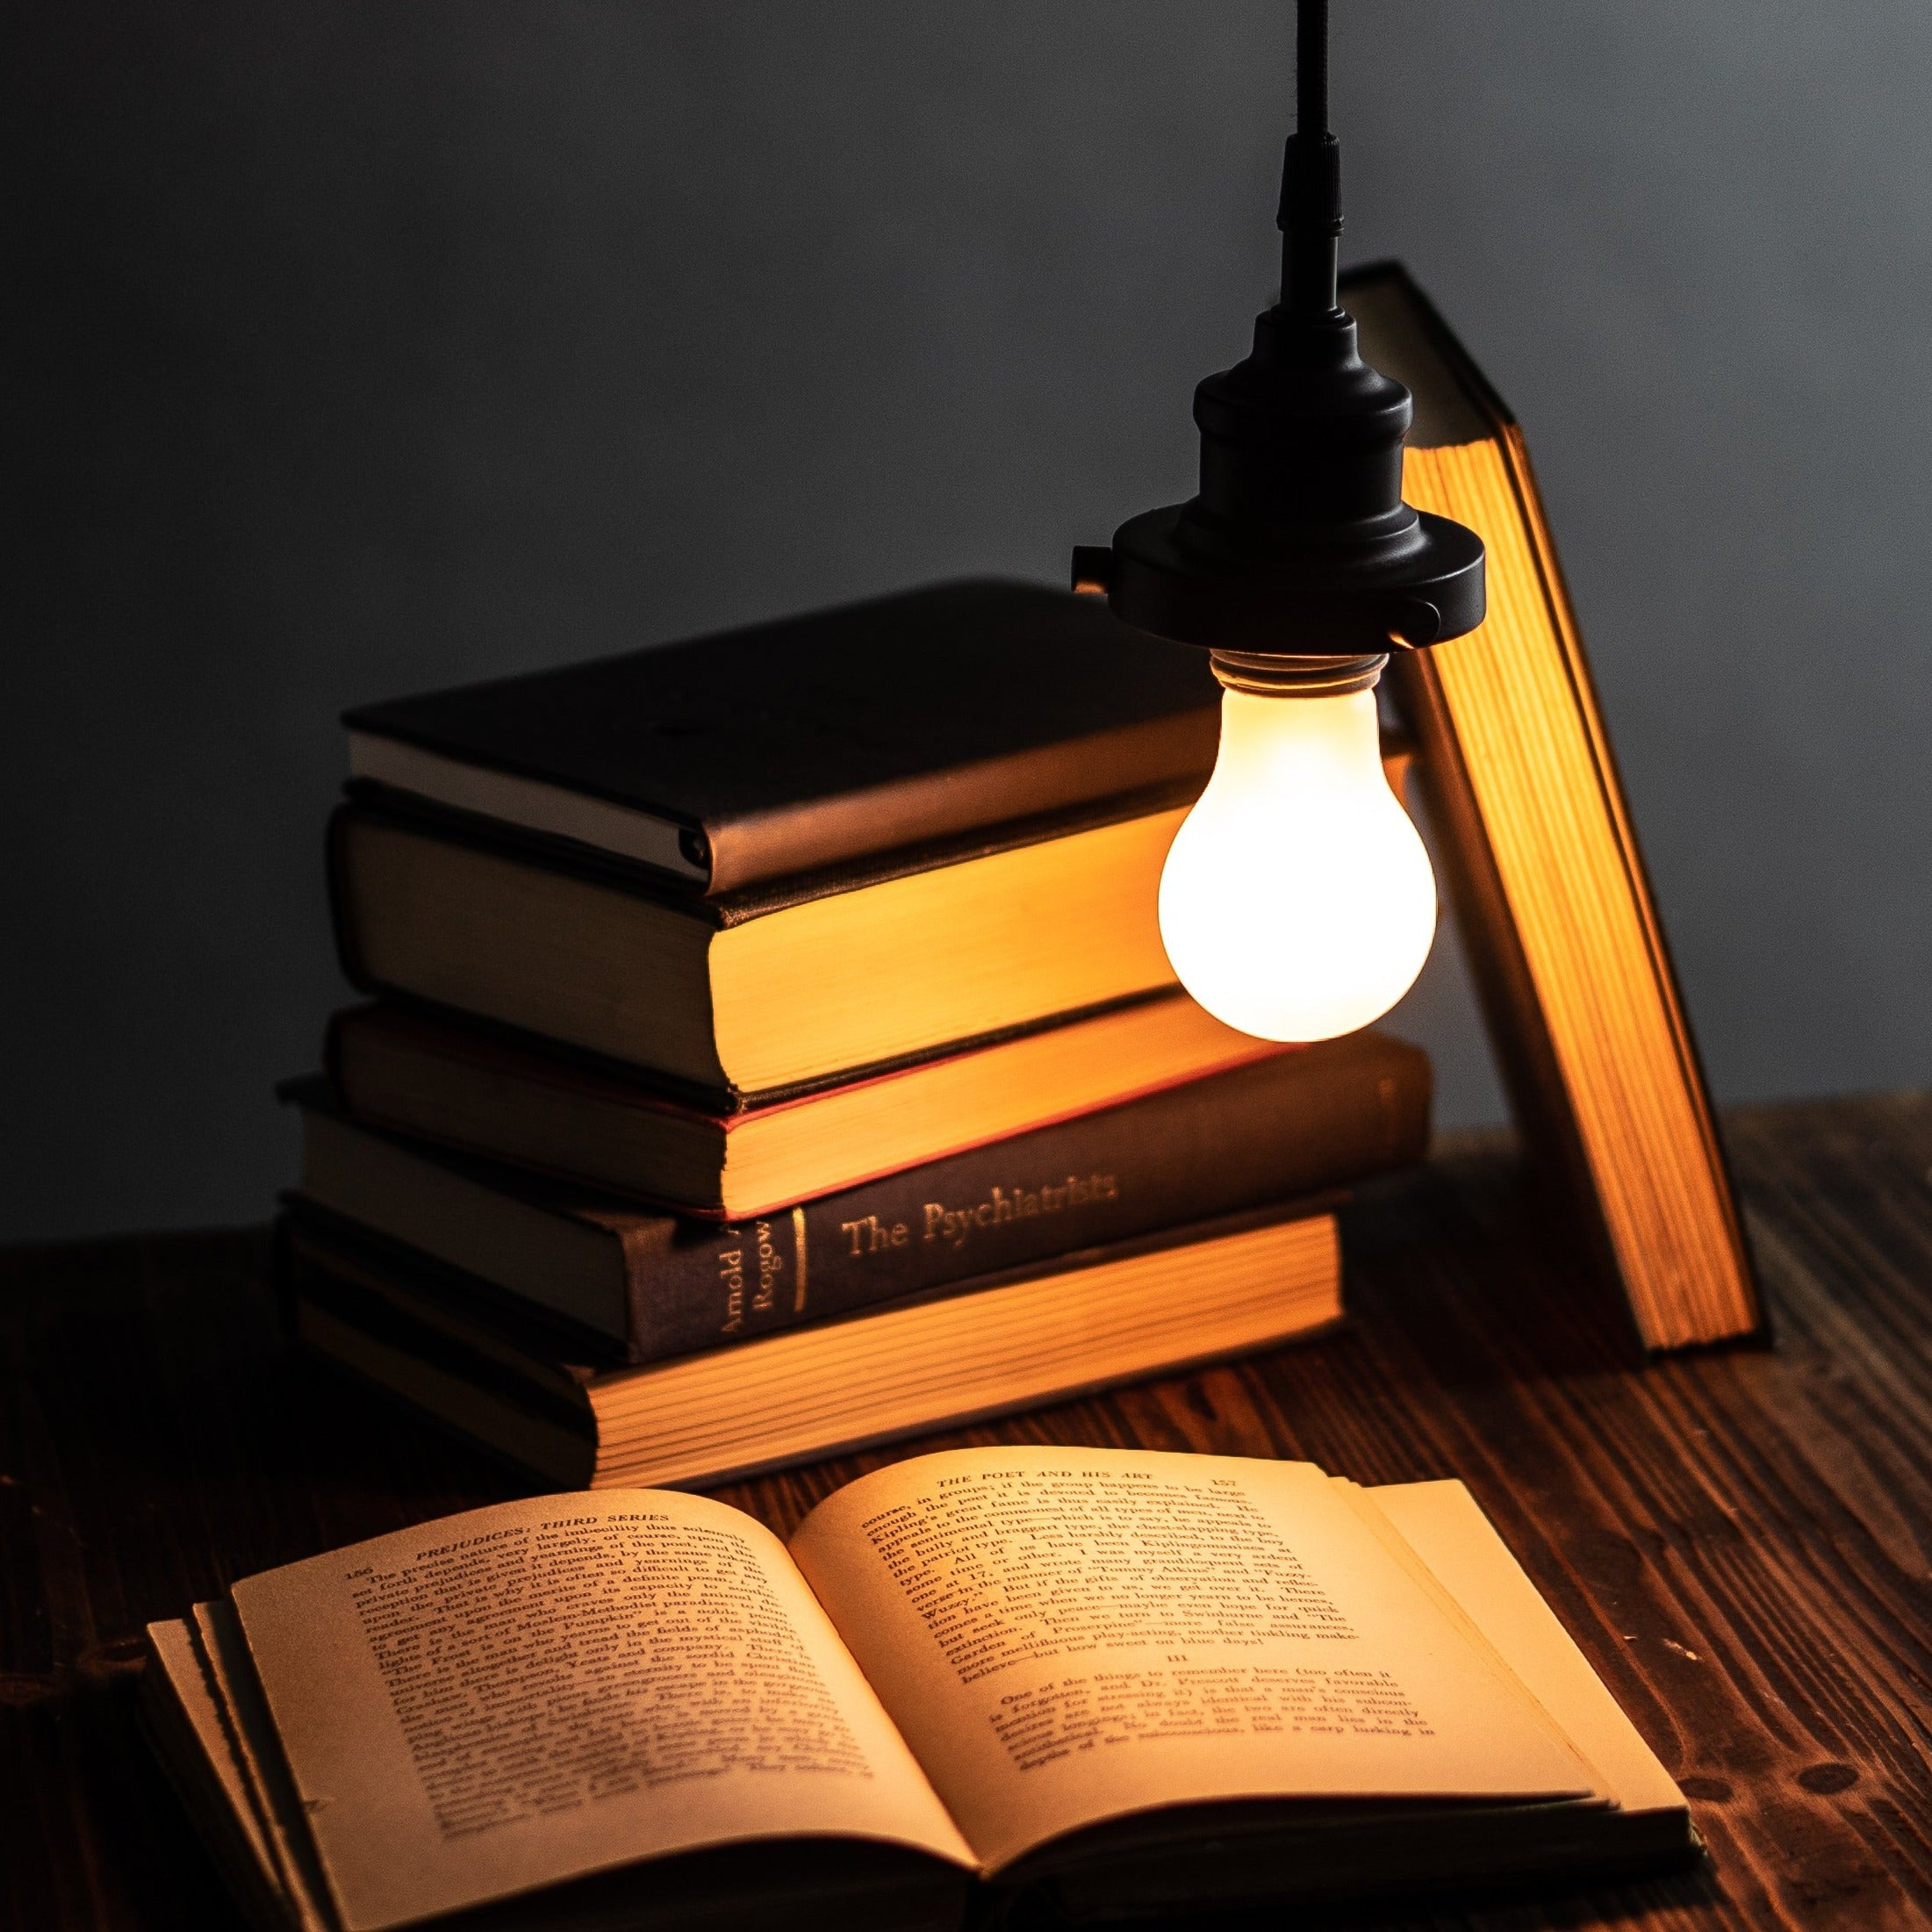 Bedtime Bulb NZ over books.